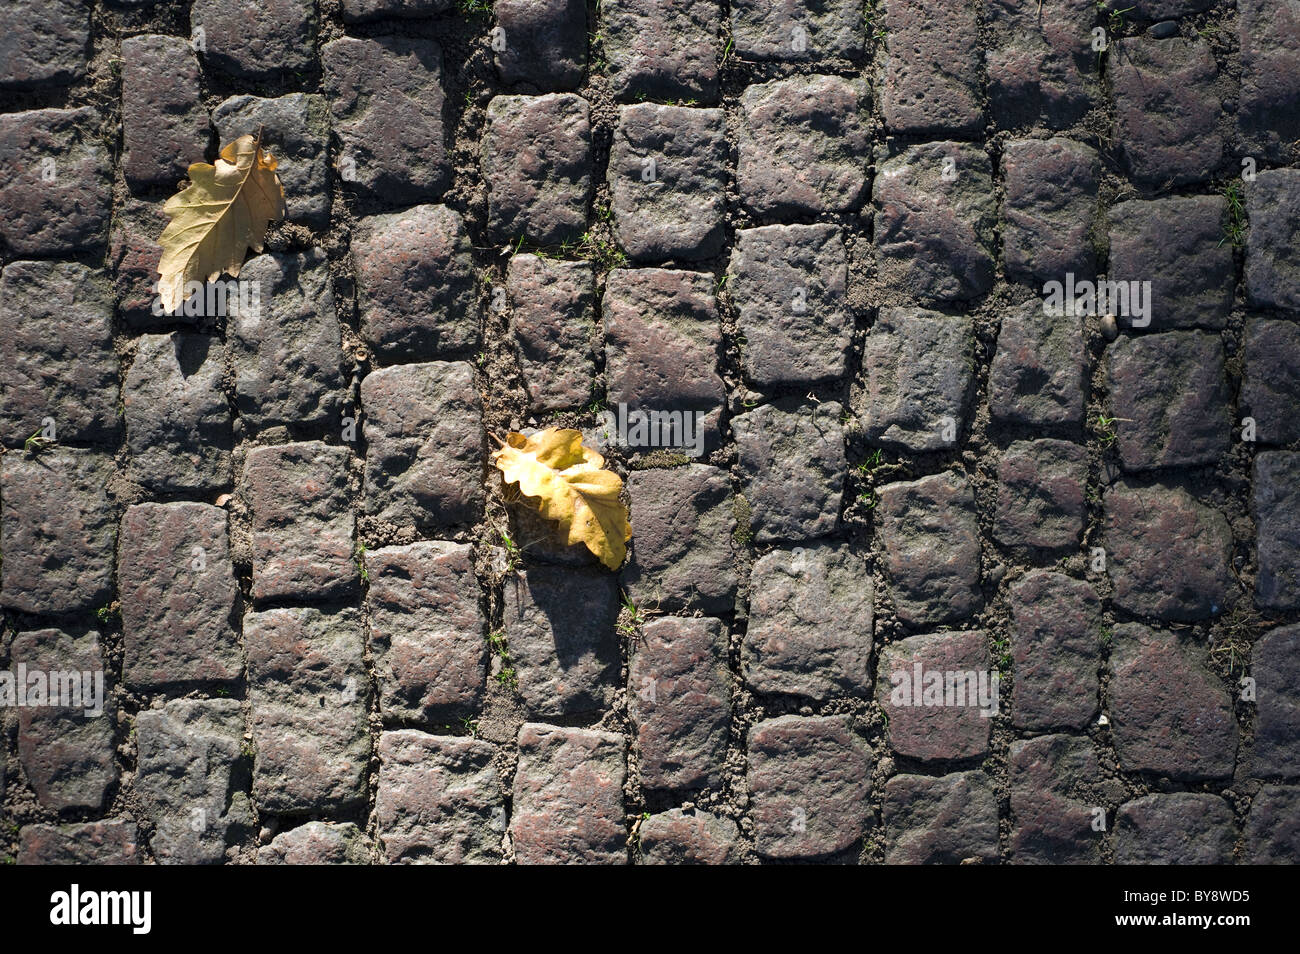 two dead leaves on a Victorian or Edwardian cobbled road on a sunny autumn afternoon - Stock Image